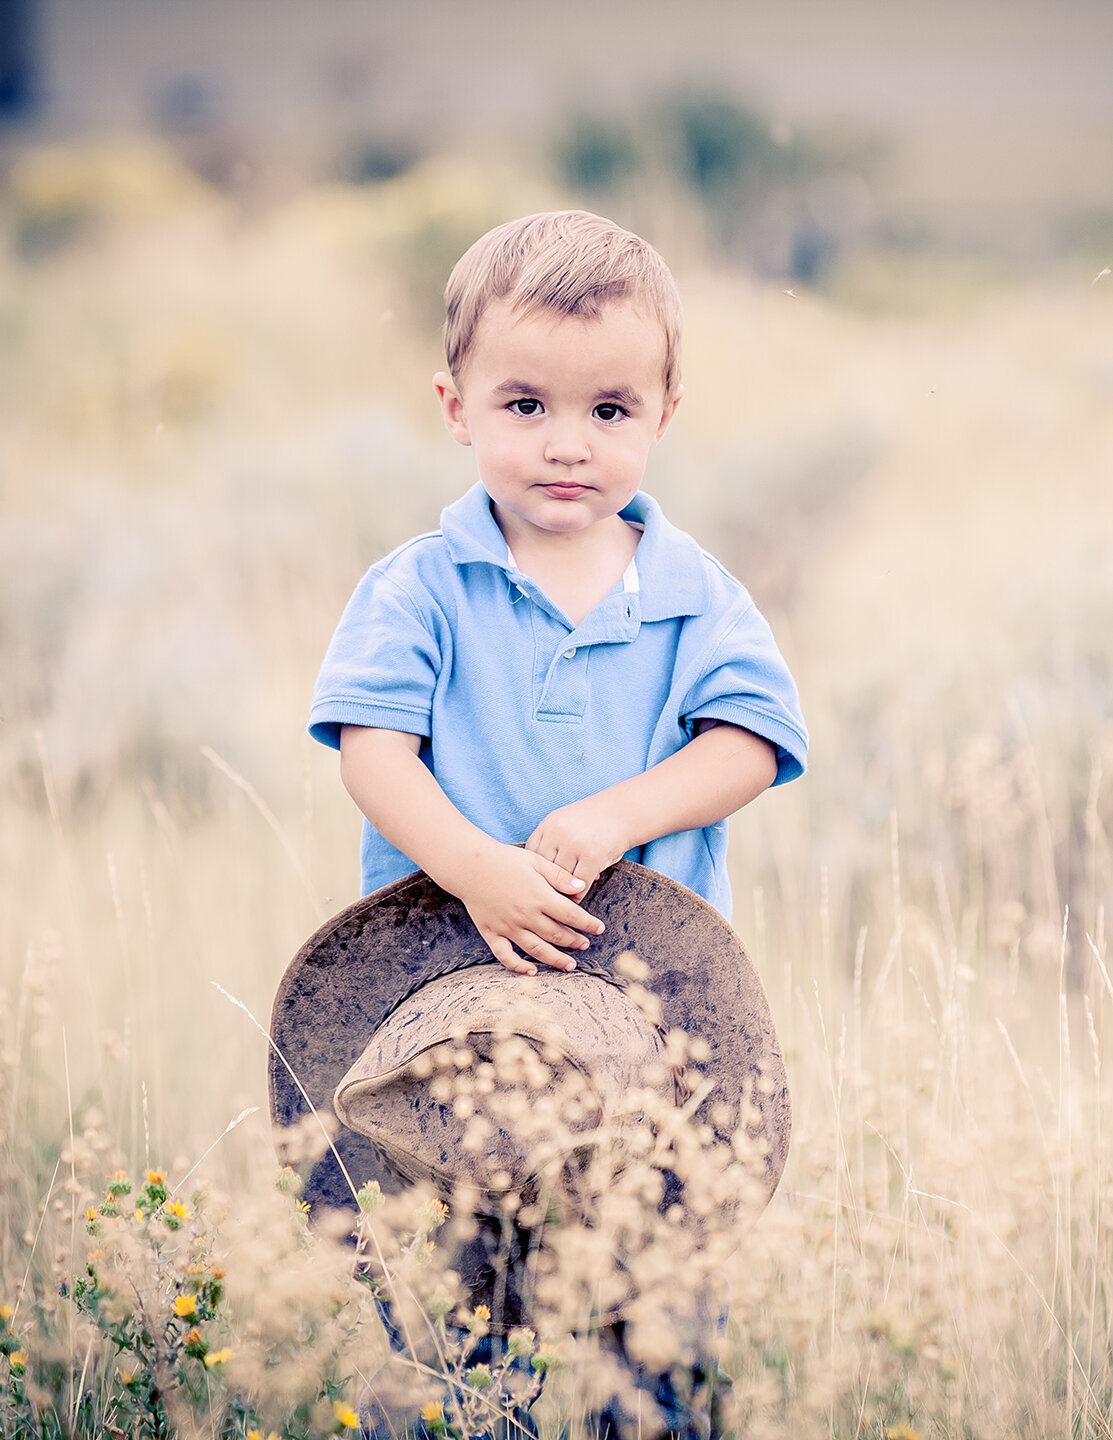 blond haired boy. little boy holding a hat in field of grass near sunrise, family pictures, located in billings montana.